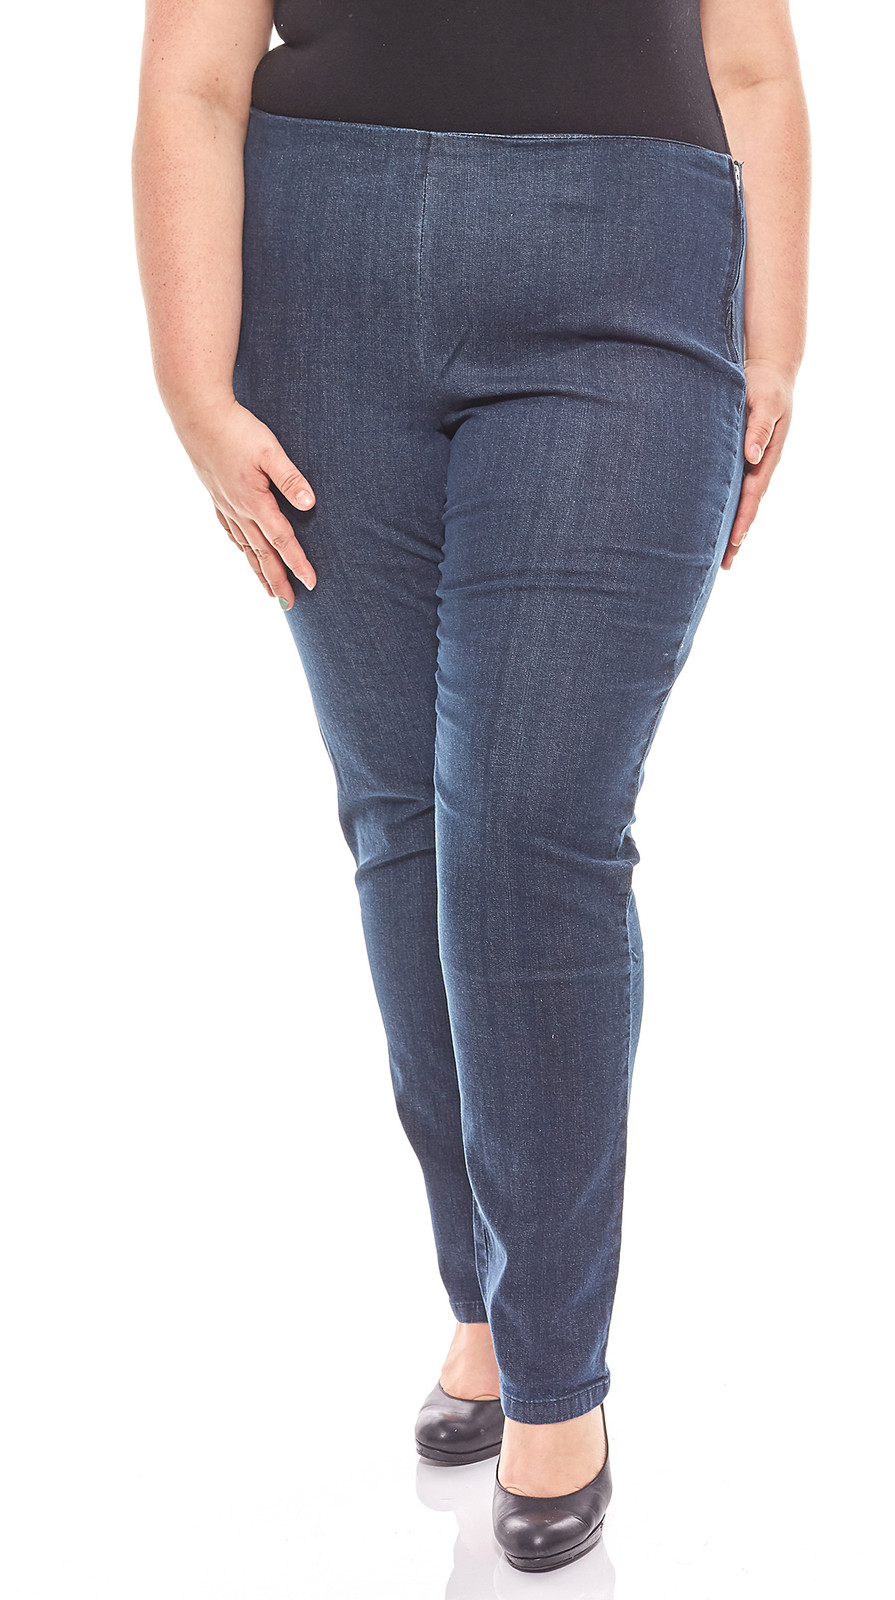 Cheer schlichte Damen Jeans Leggings Jeggings Langgröße